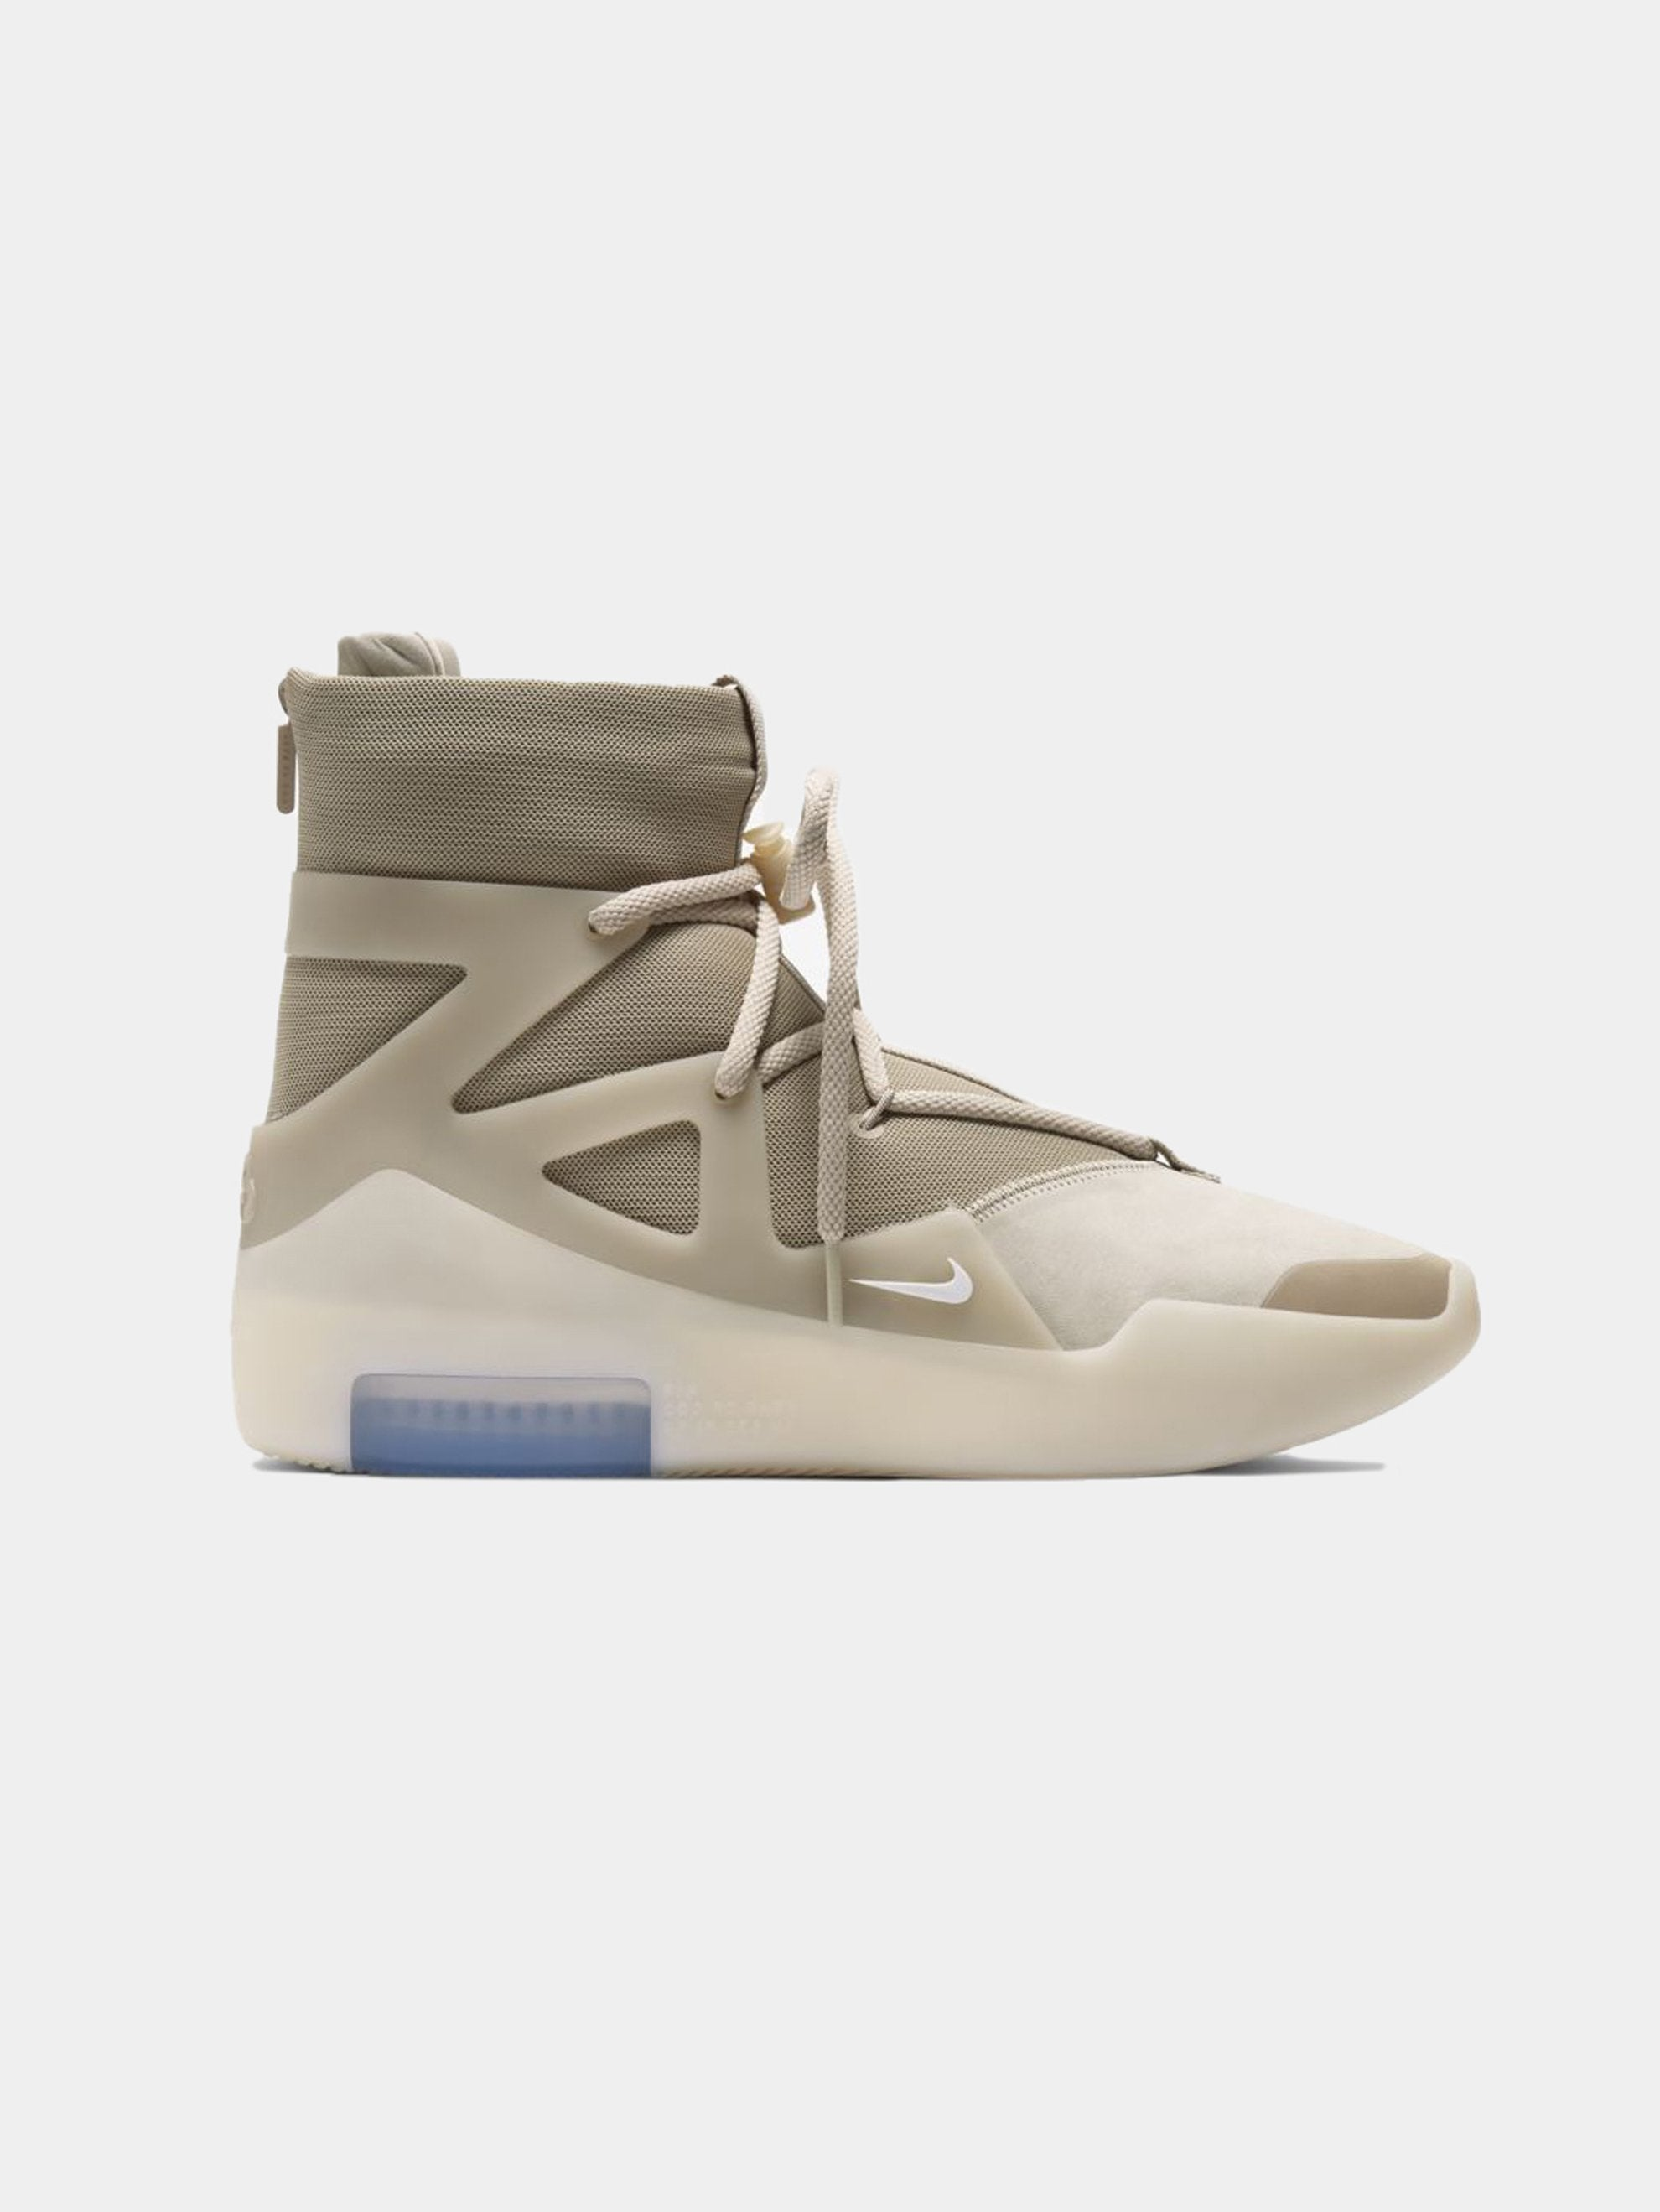 Multi-Color/String Oatmeal Nike Air Fear of God 1 1